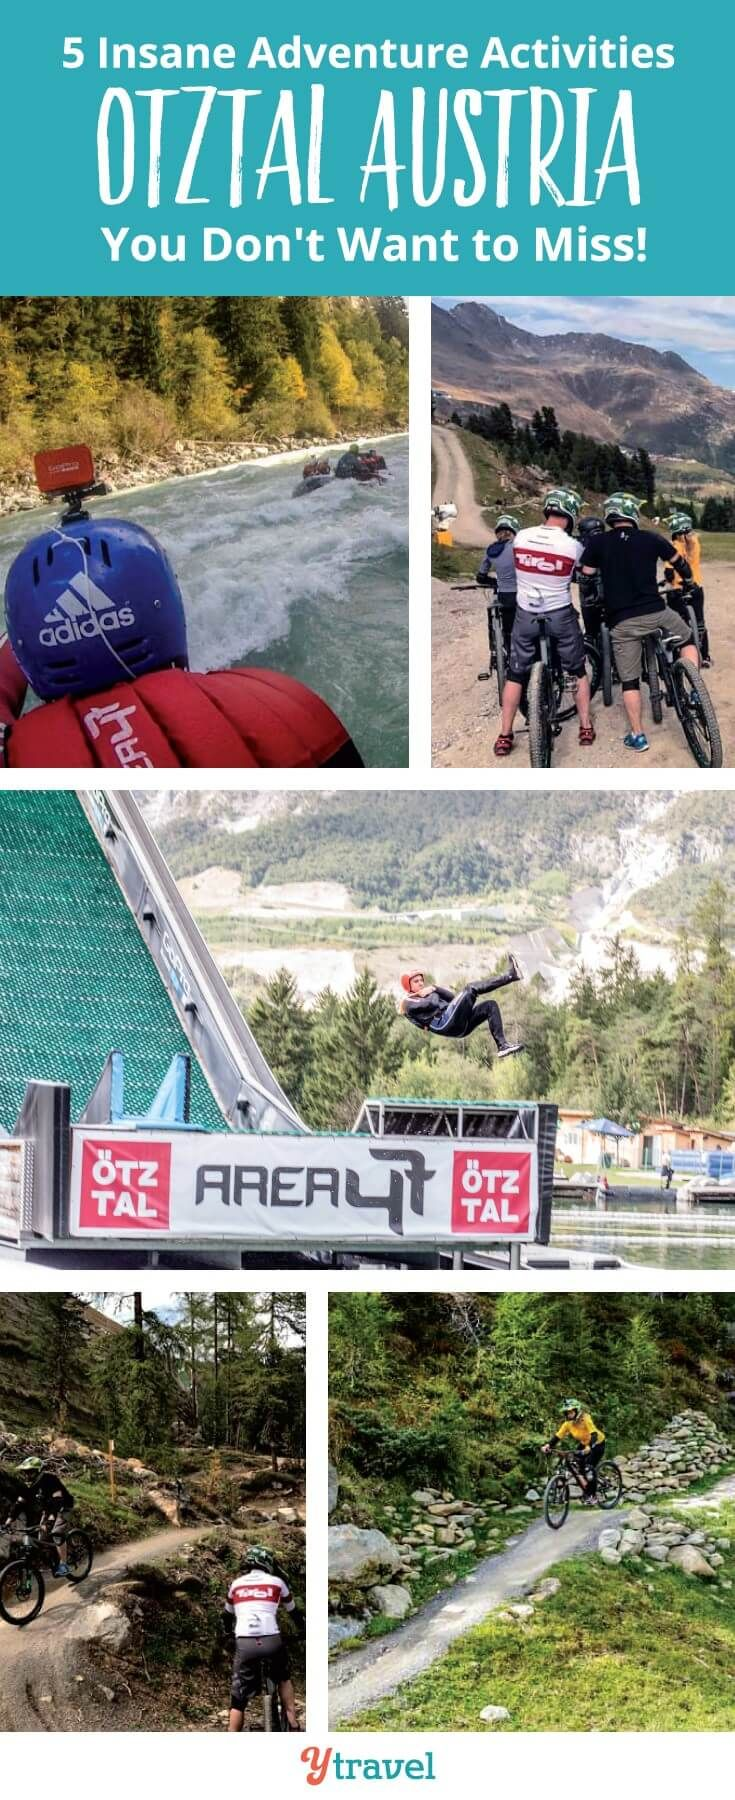 Planning a trip to Austria? If you love adventure activities, Tirol is the place for you to visit. Don't miss the Otztal Valley region for the famous Area 47 extreme water park, downhill mountain biking, ebiking and more